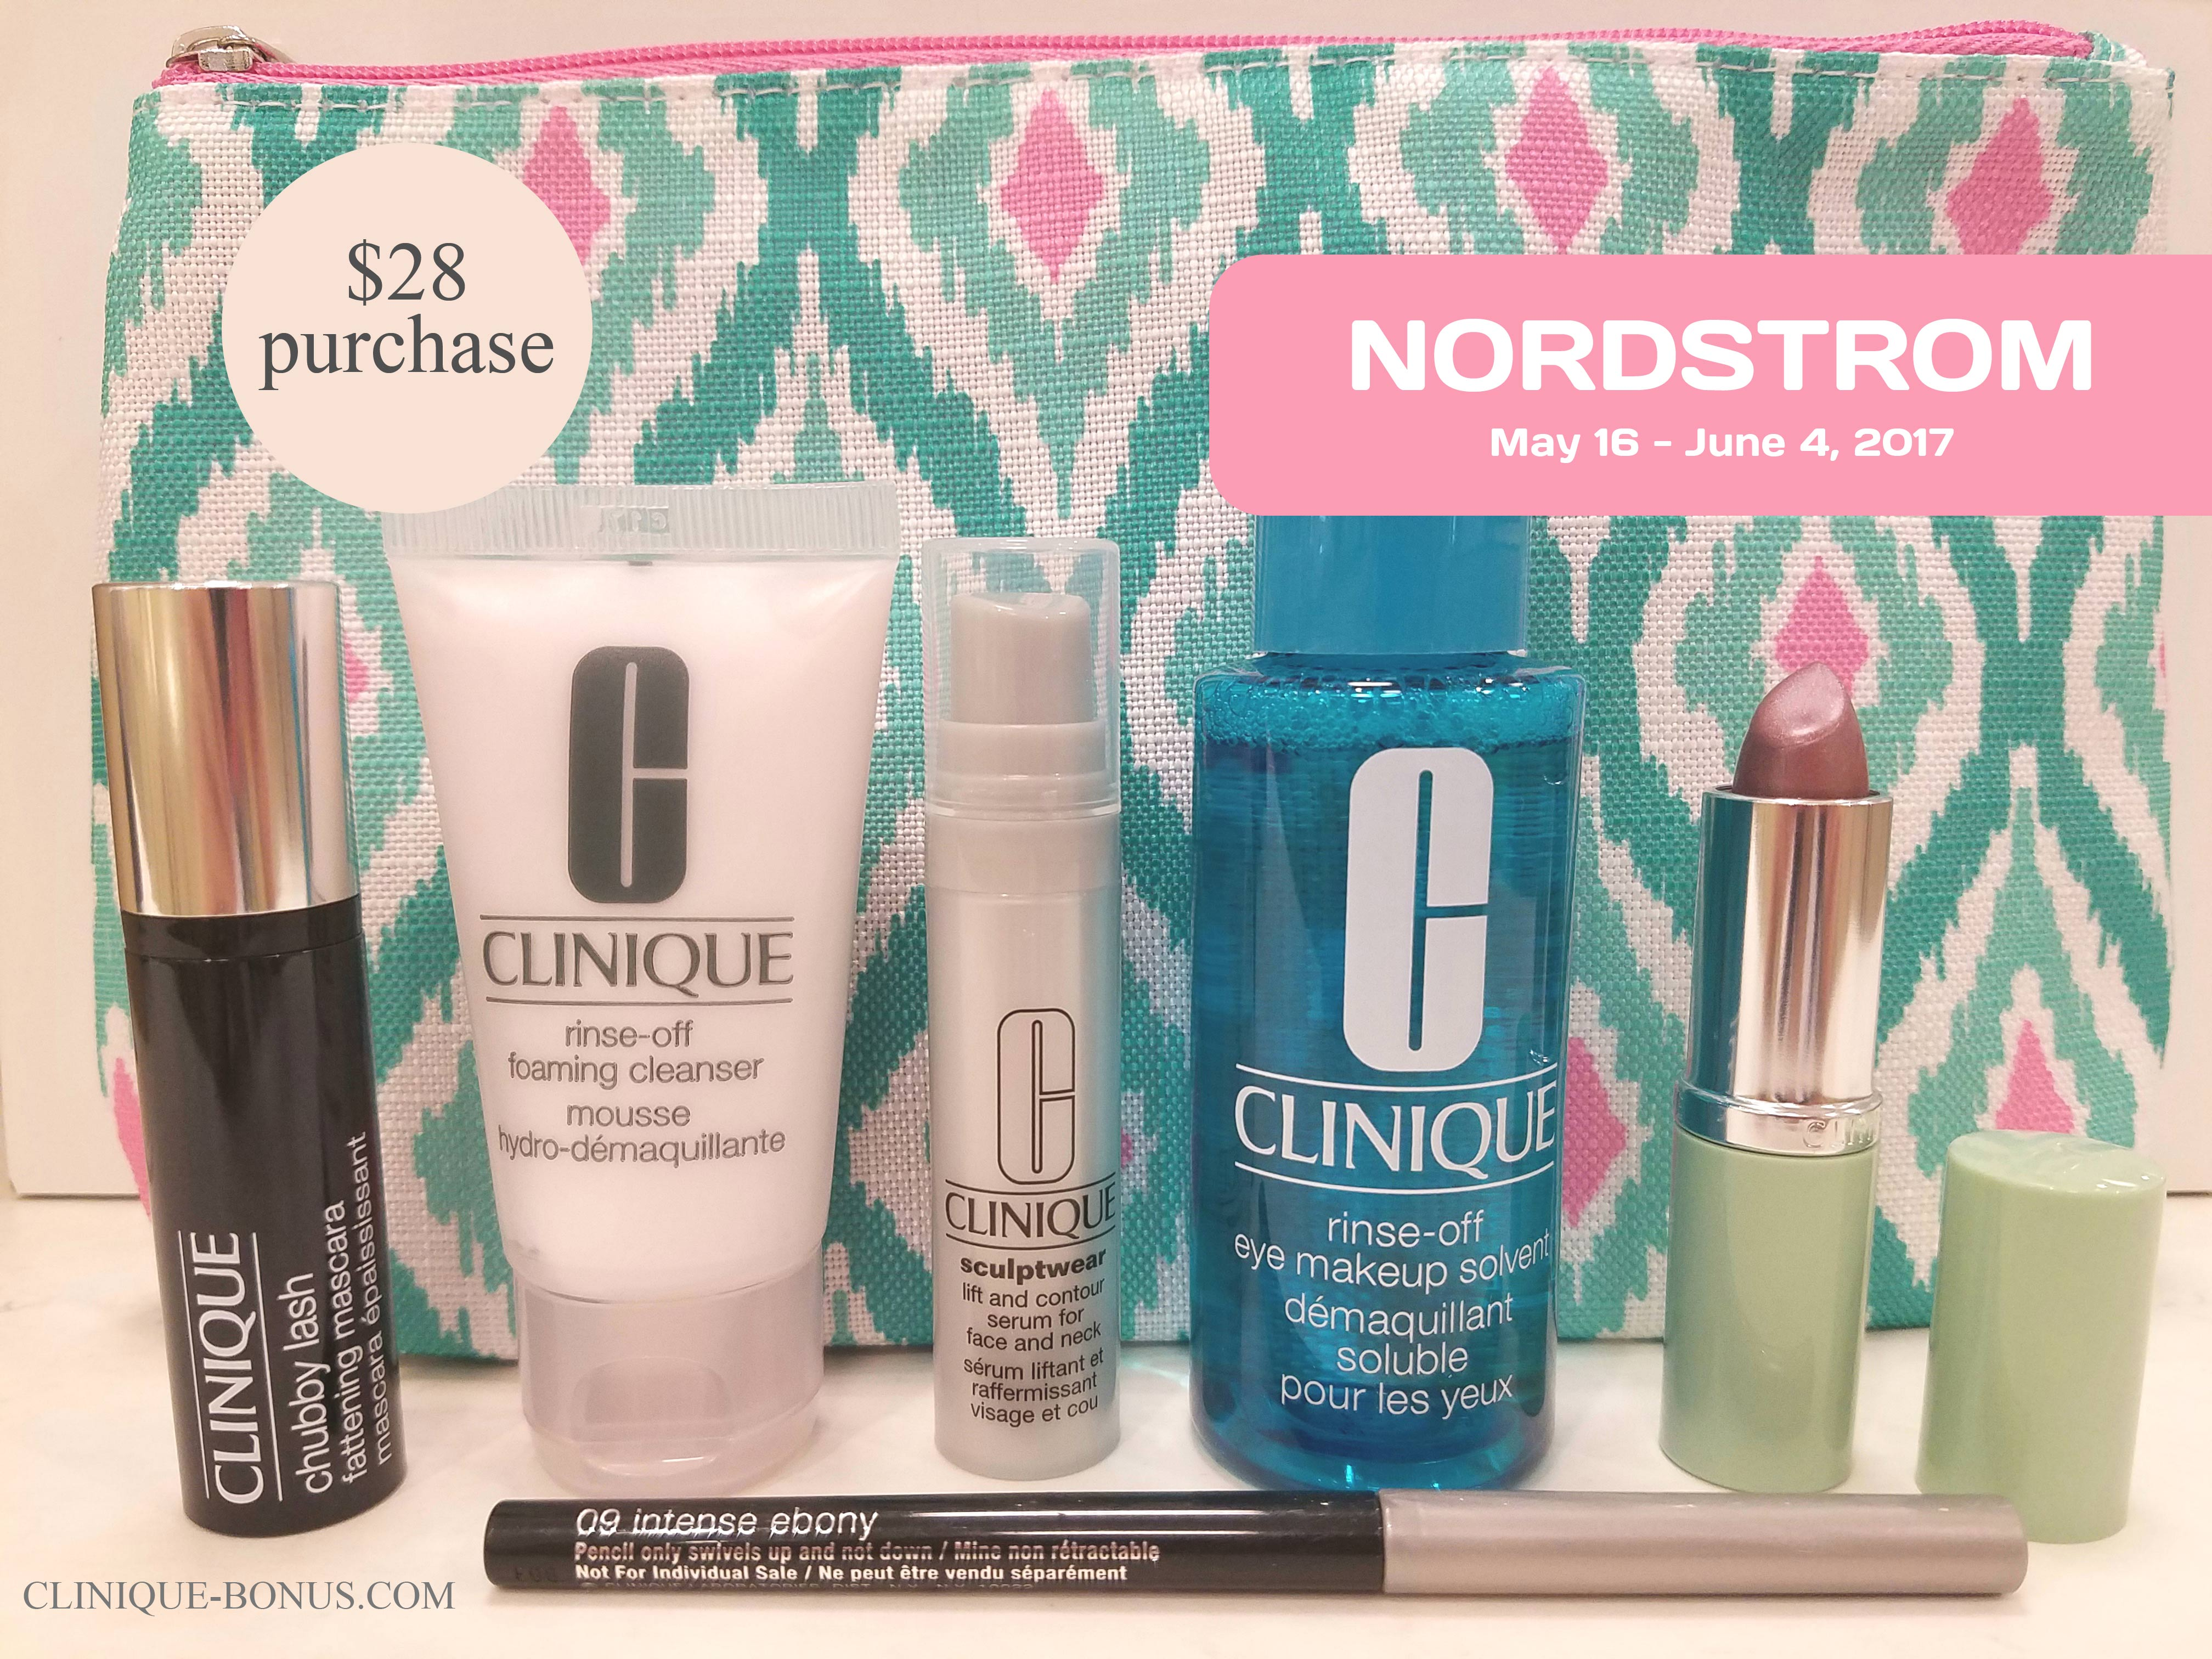 Nordstrom: Clinique Bonuses in 2017